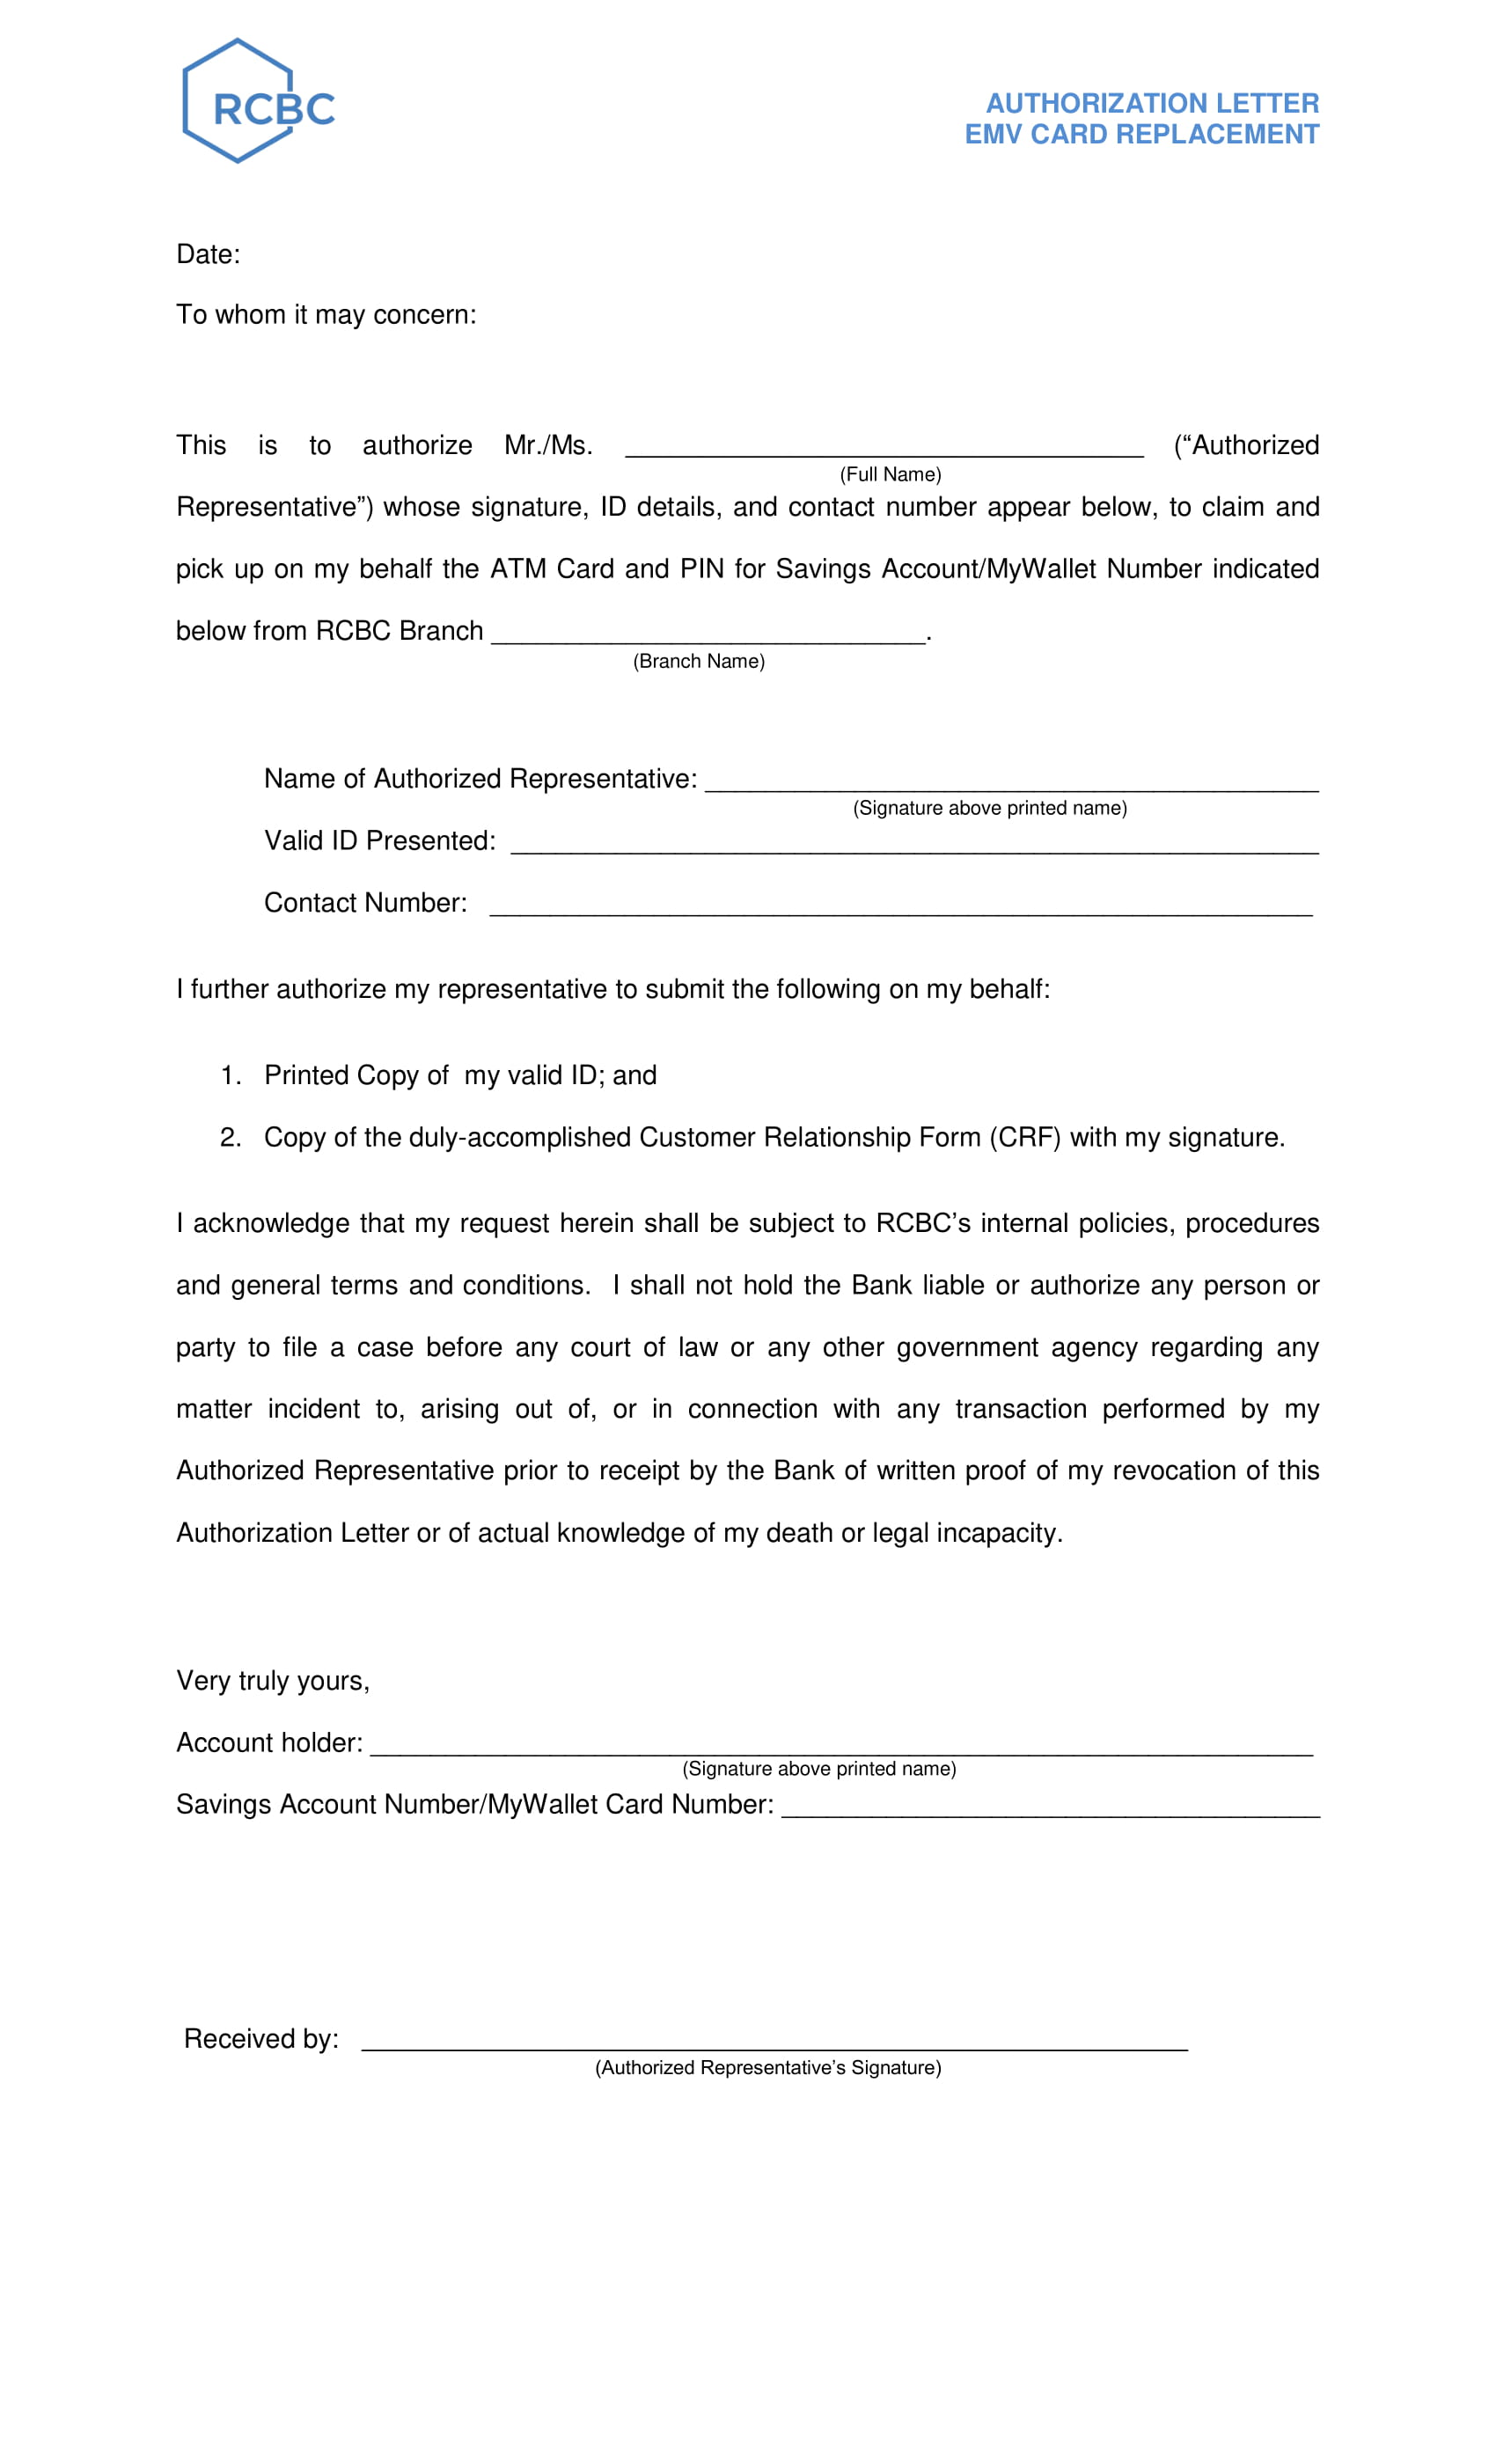 authorization letter to claim and pick up atm card and pin for savings account example 1